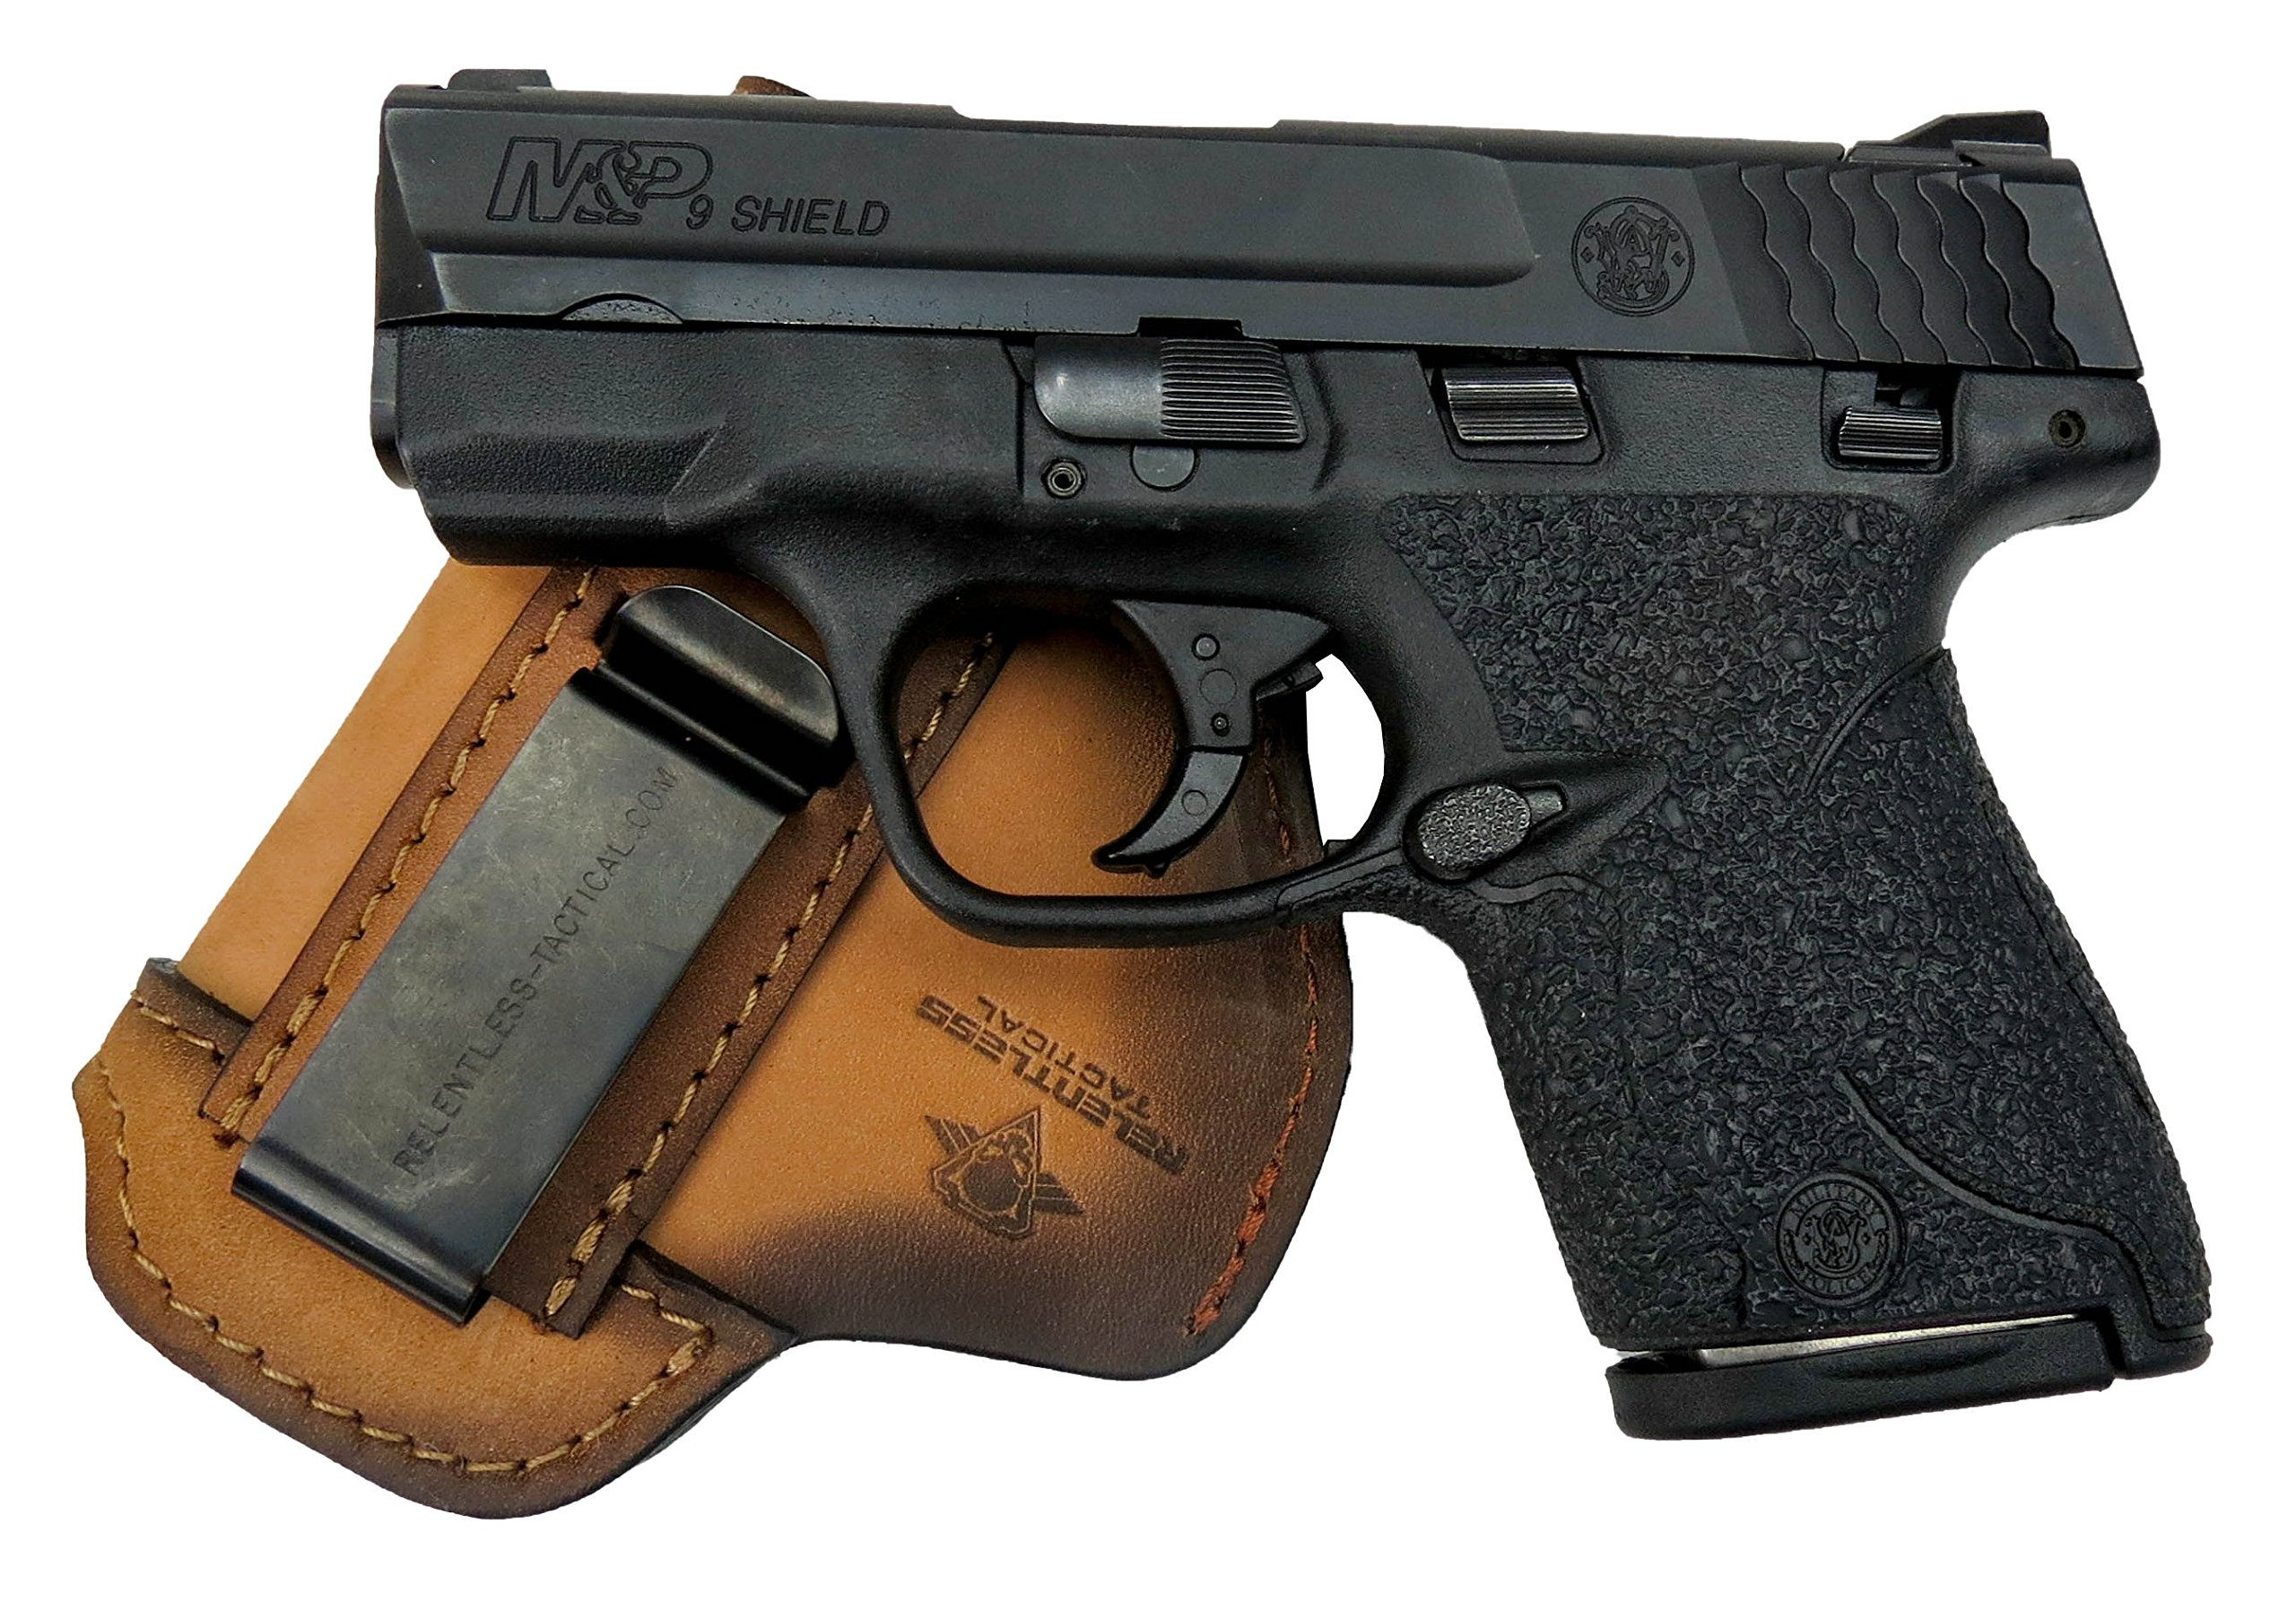 Relentless Tactical The Defender Leather IWB Holster - Made in USA - For S&W M&P Shield - GLOCK 17 19 22 23 32 33/Springfield XD & XDS/Plus All Similar Sized Handguns – Charred Oak – Right Handed by Relentless Tactical (Image #8)